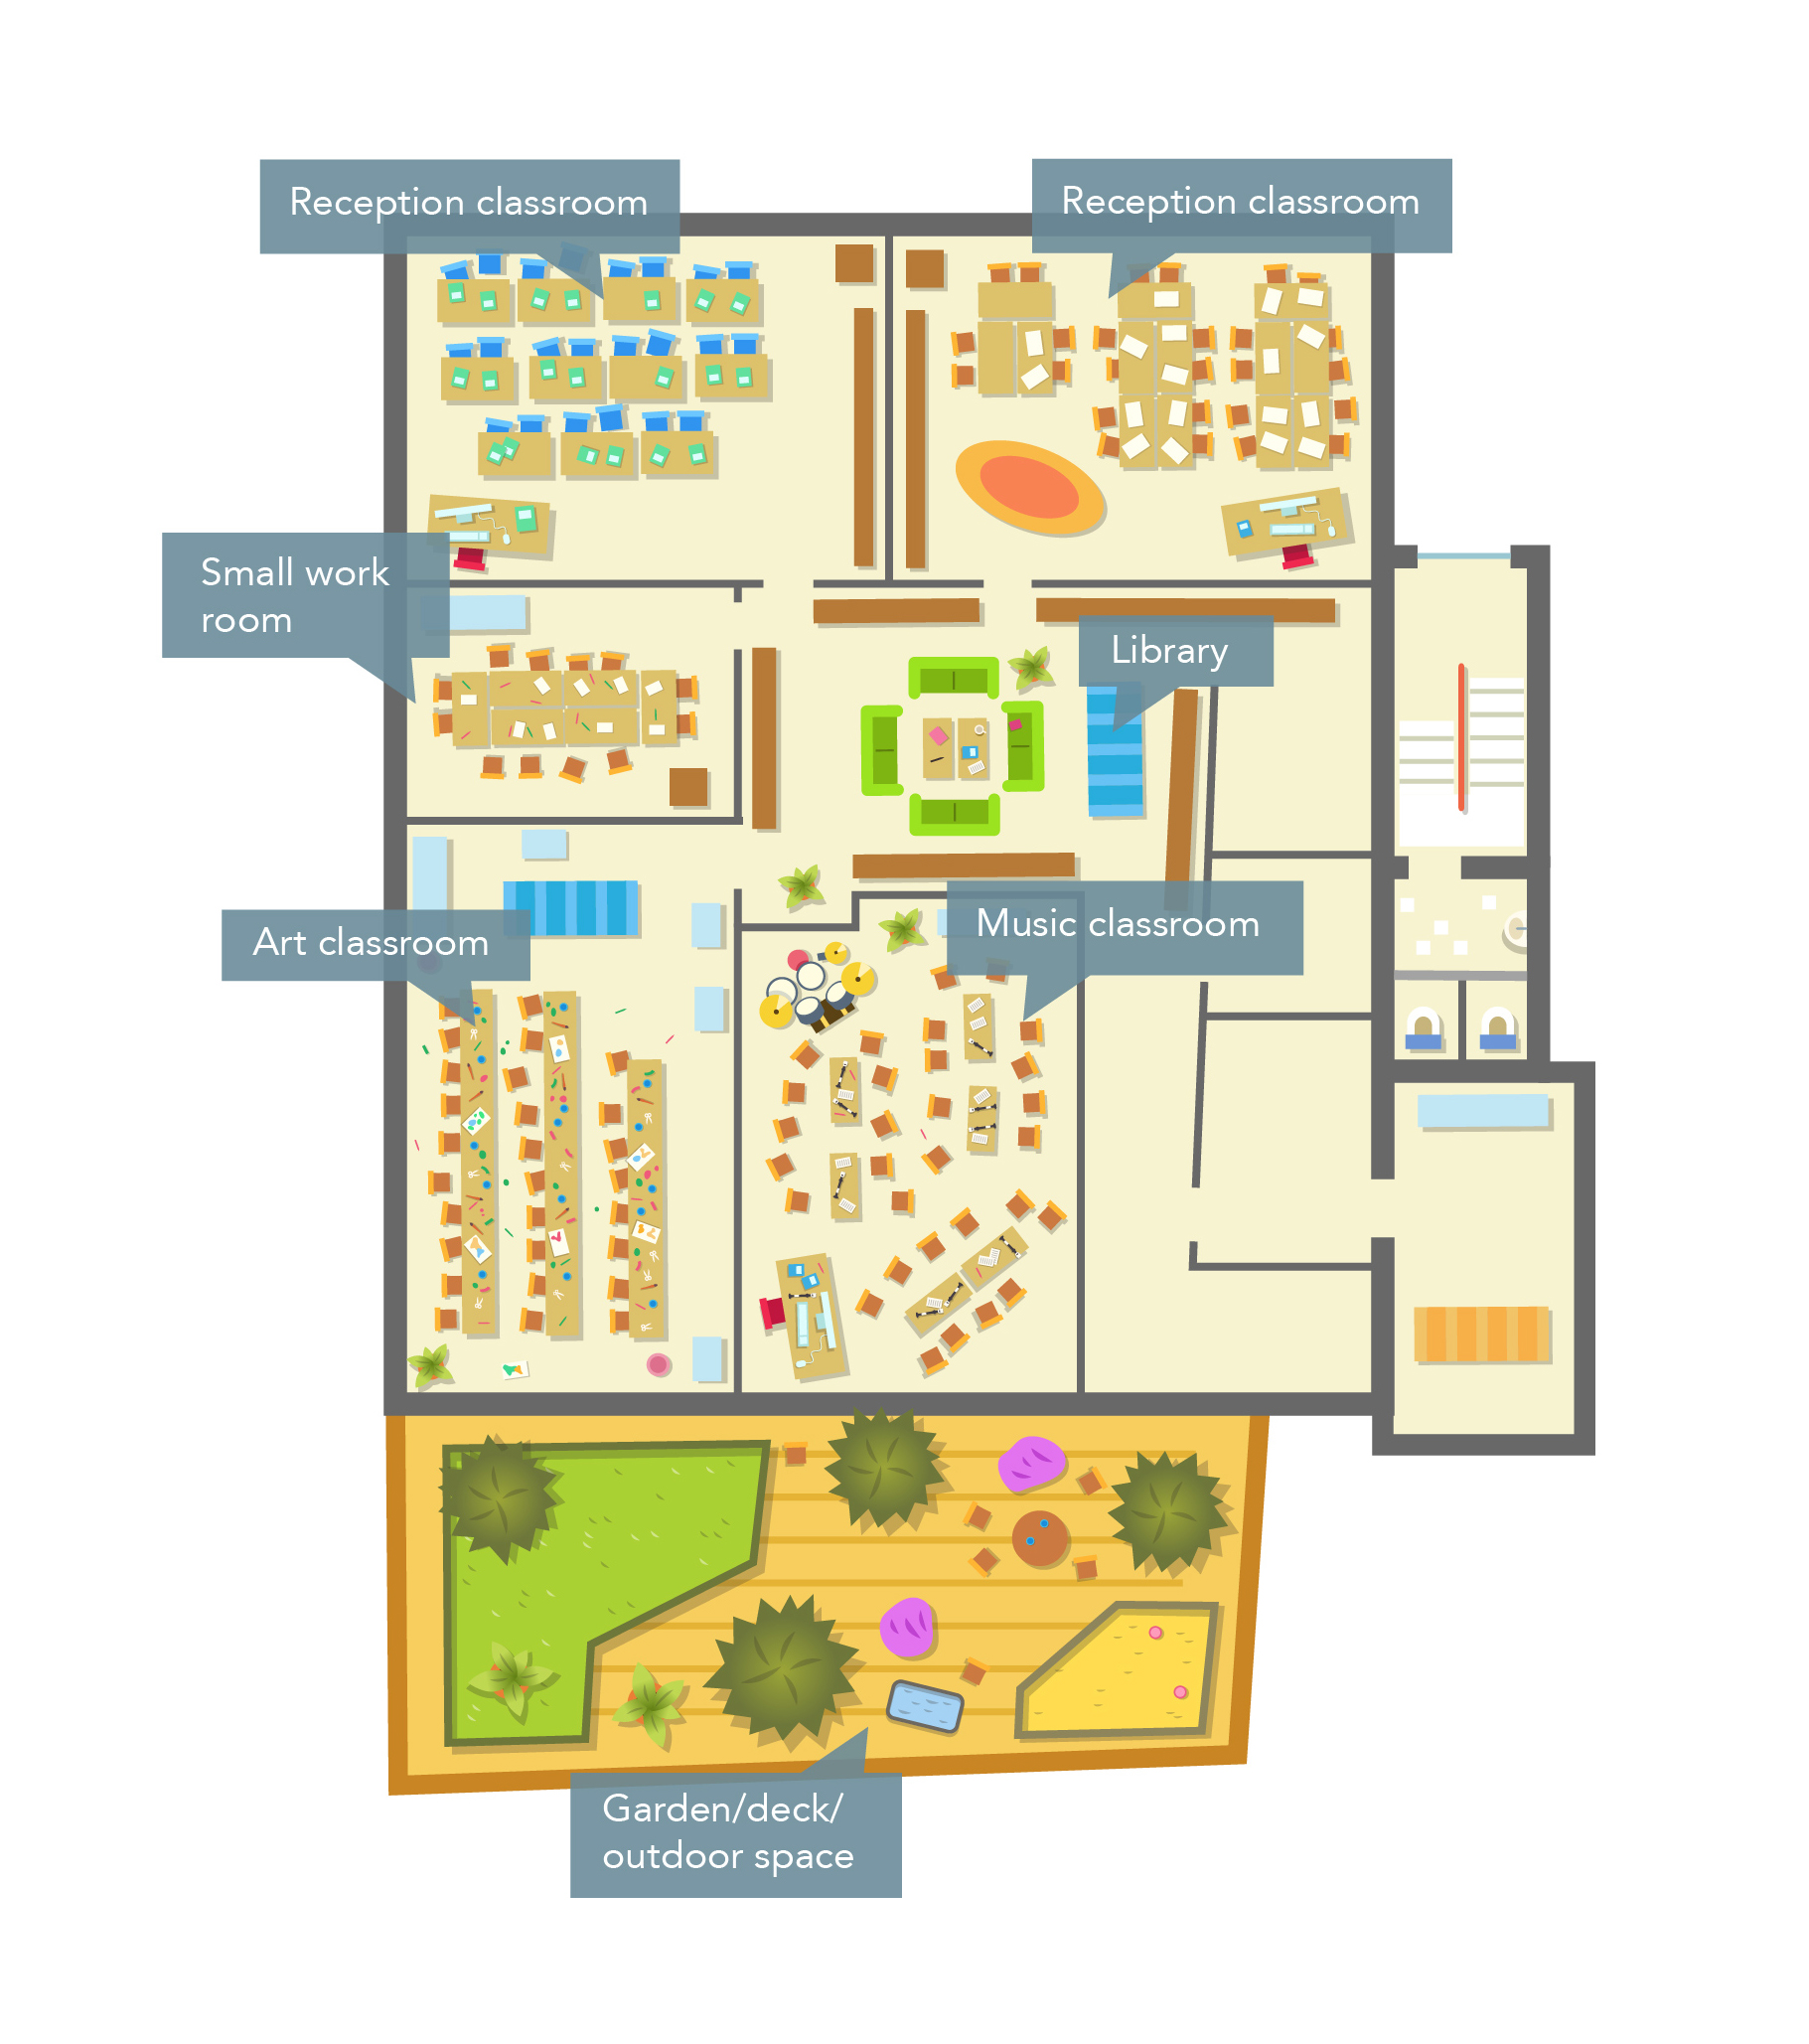 School Location And Classroom Layout Hackney New Primary